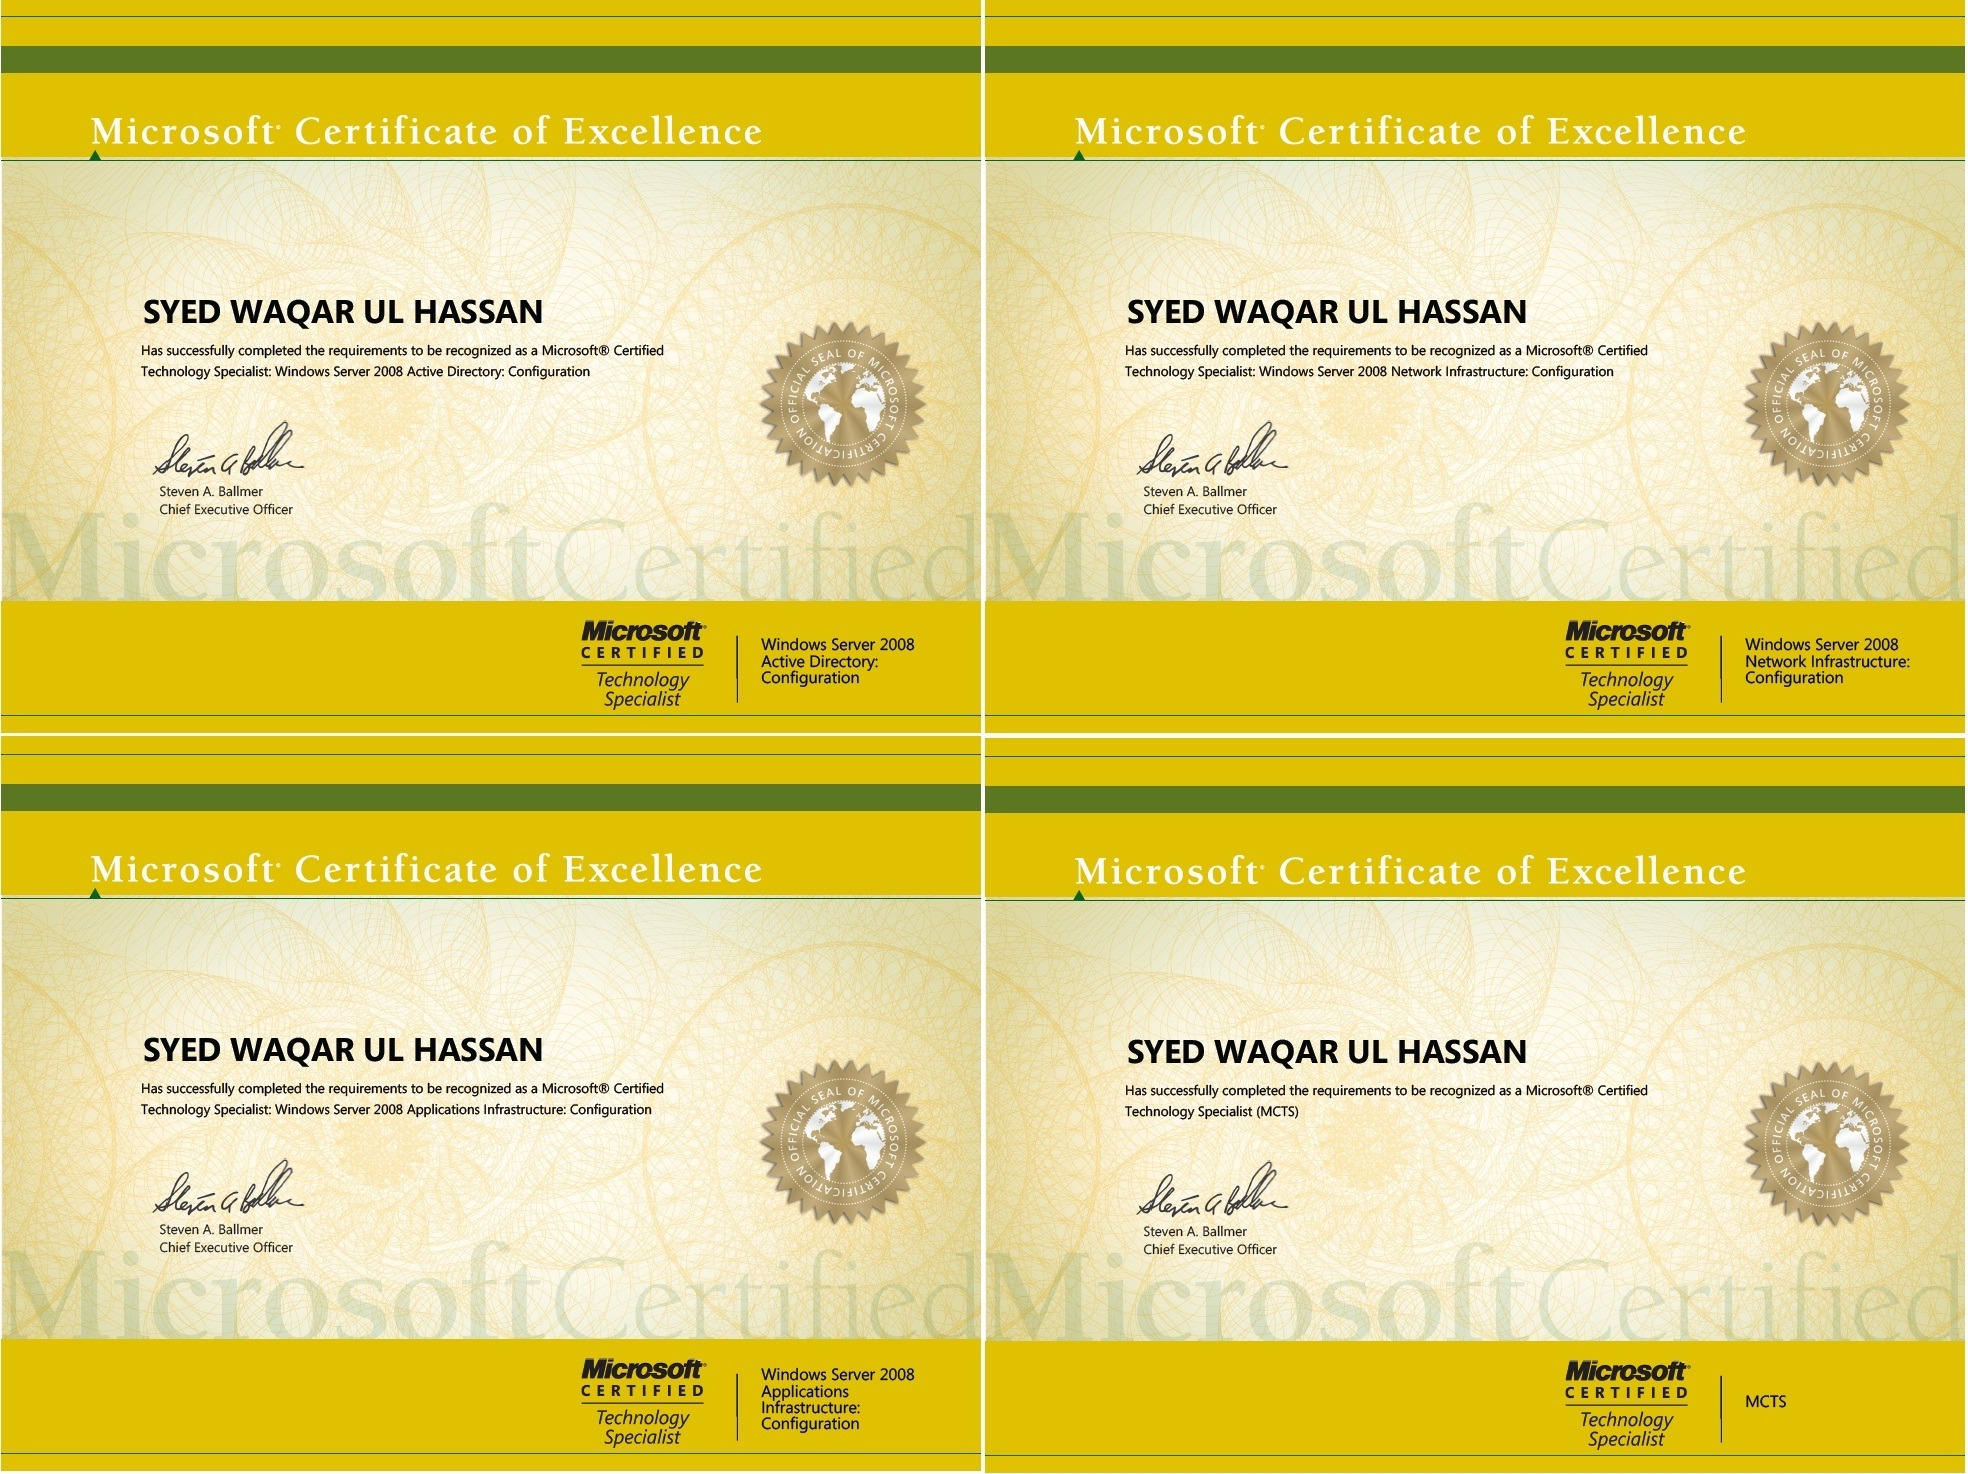 Microsoft Certified Technology Specialist Mcts 4151141